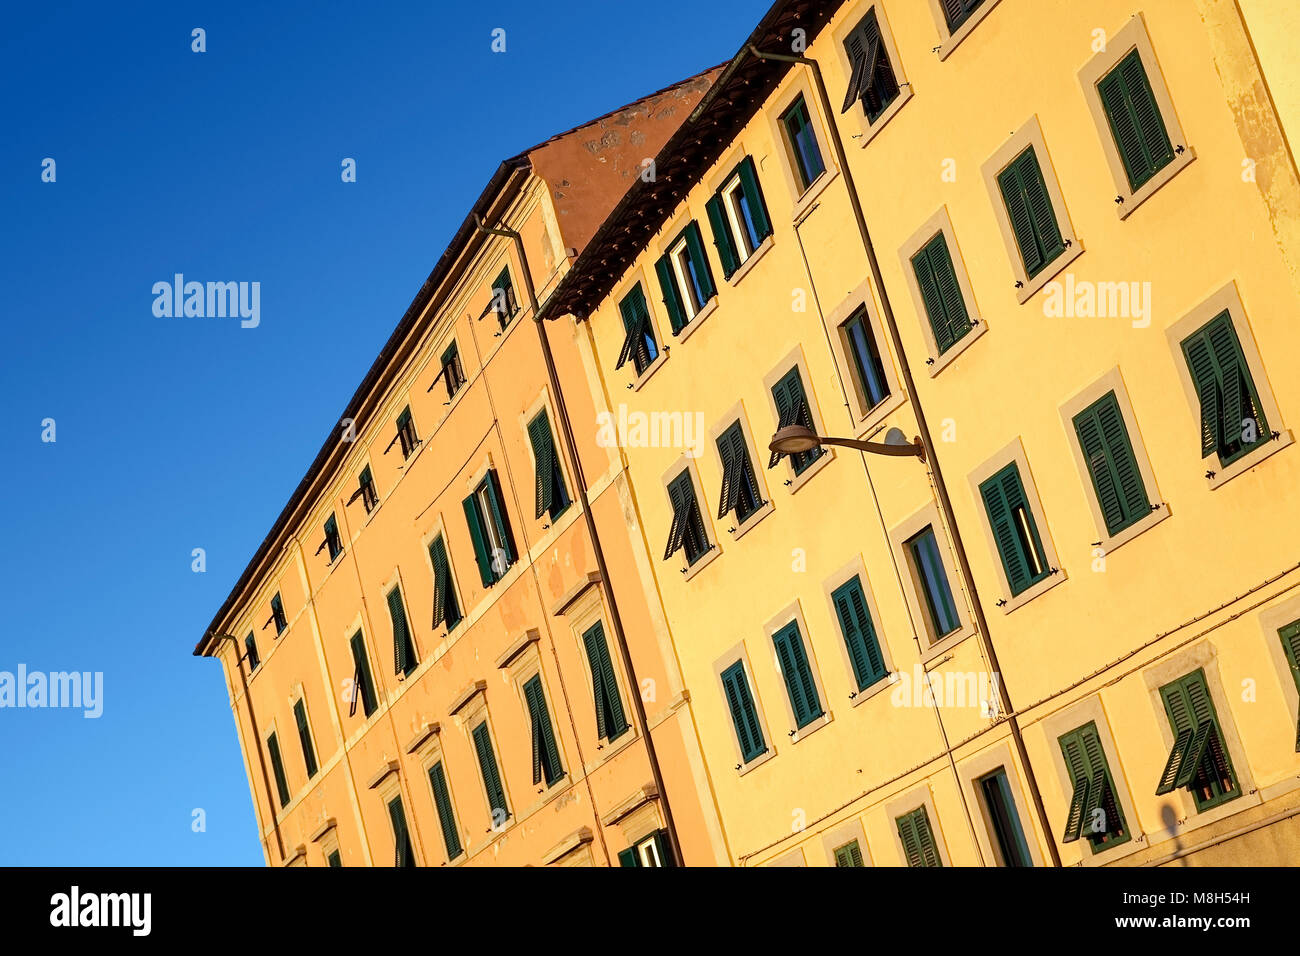 Colorful apartment buildings, Livorno, Italy - Stock Image